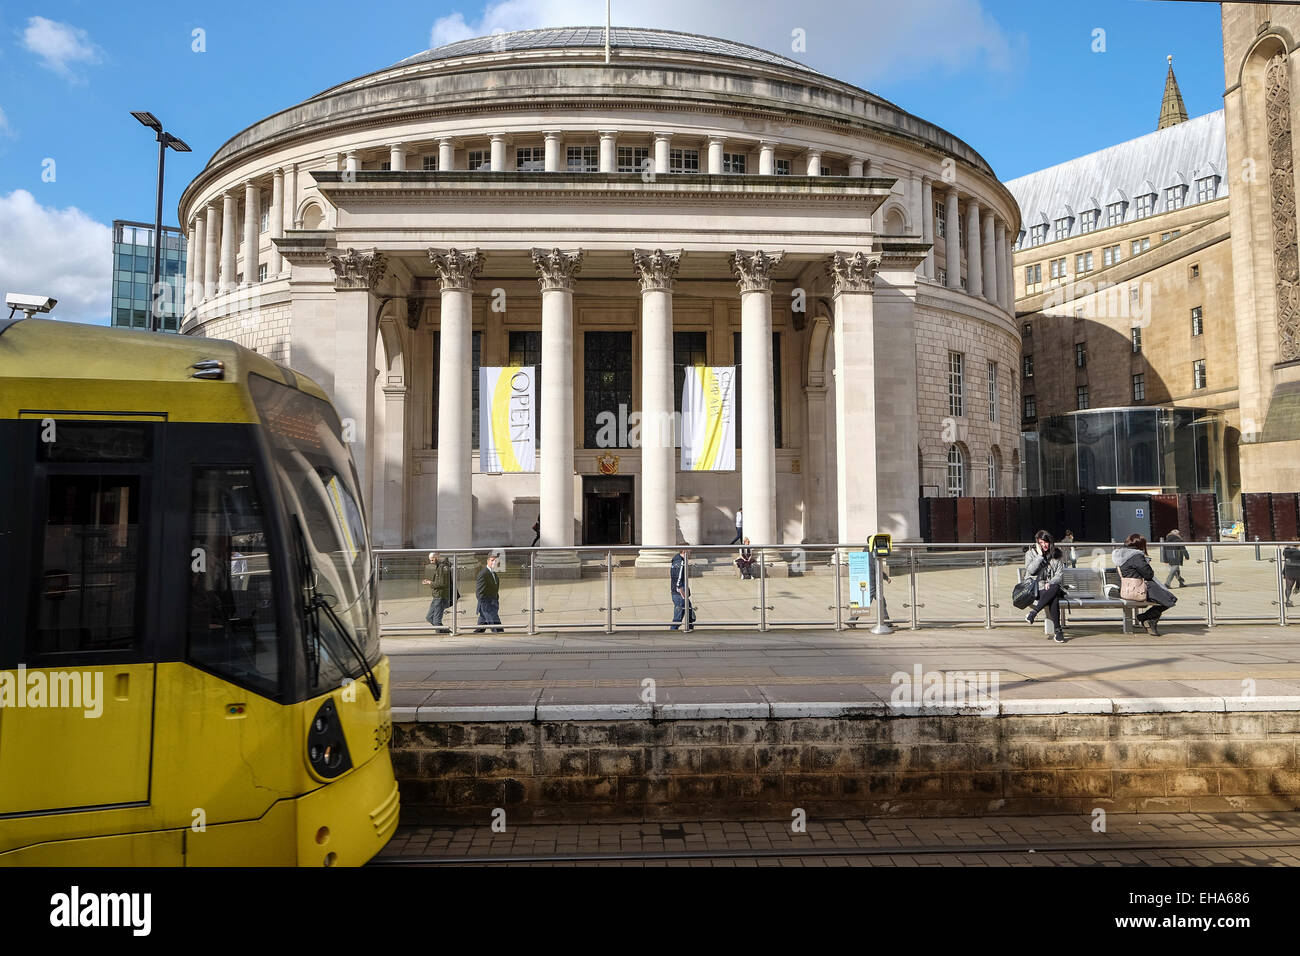 Manchester England: A Metro-link tram approaches the station by the City's Central Library building - Stock Image